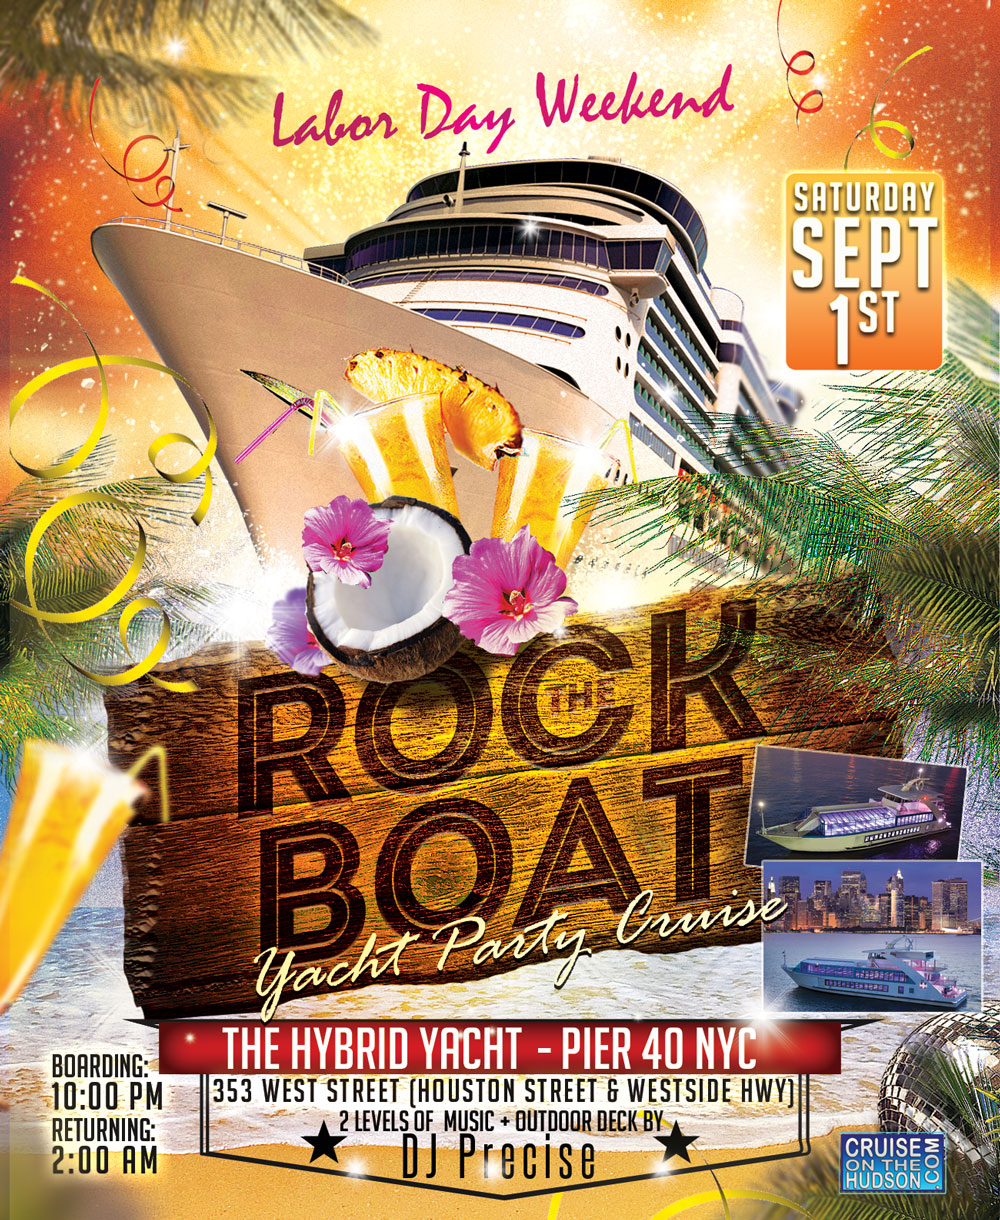 Rock The Boat end of summer yacht party cruise NYC Boat Party luxurious Hybrid Yacht boat Pier 40 NYC Hornblower Landing